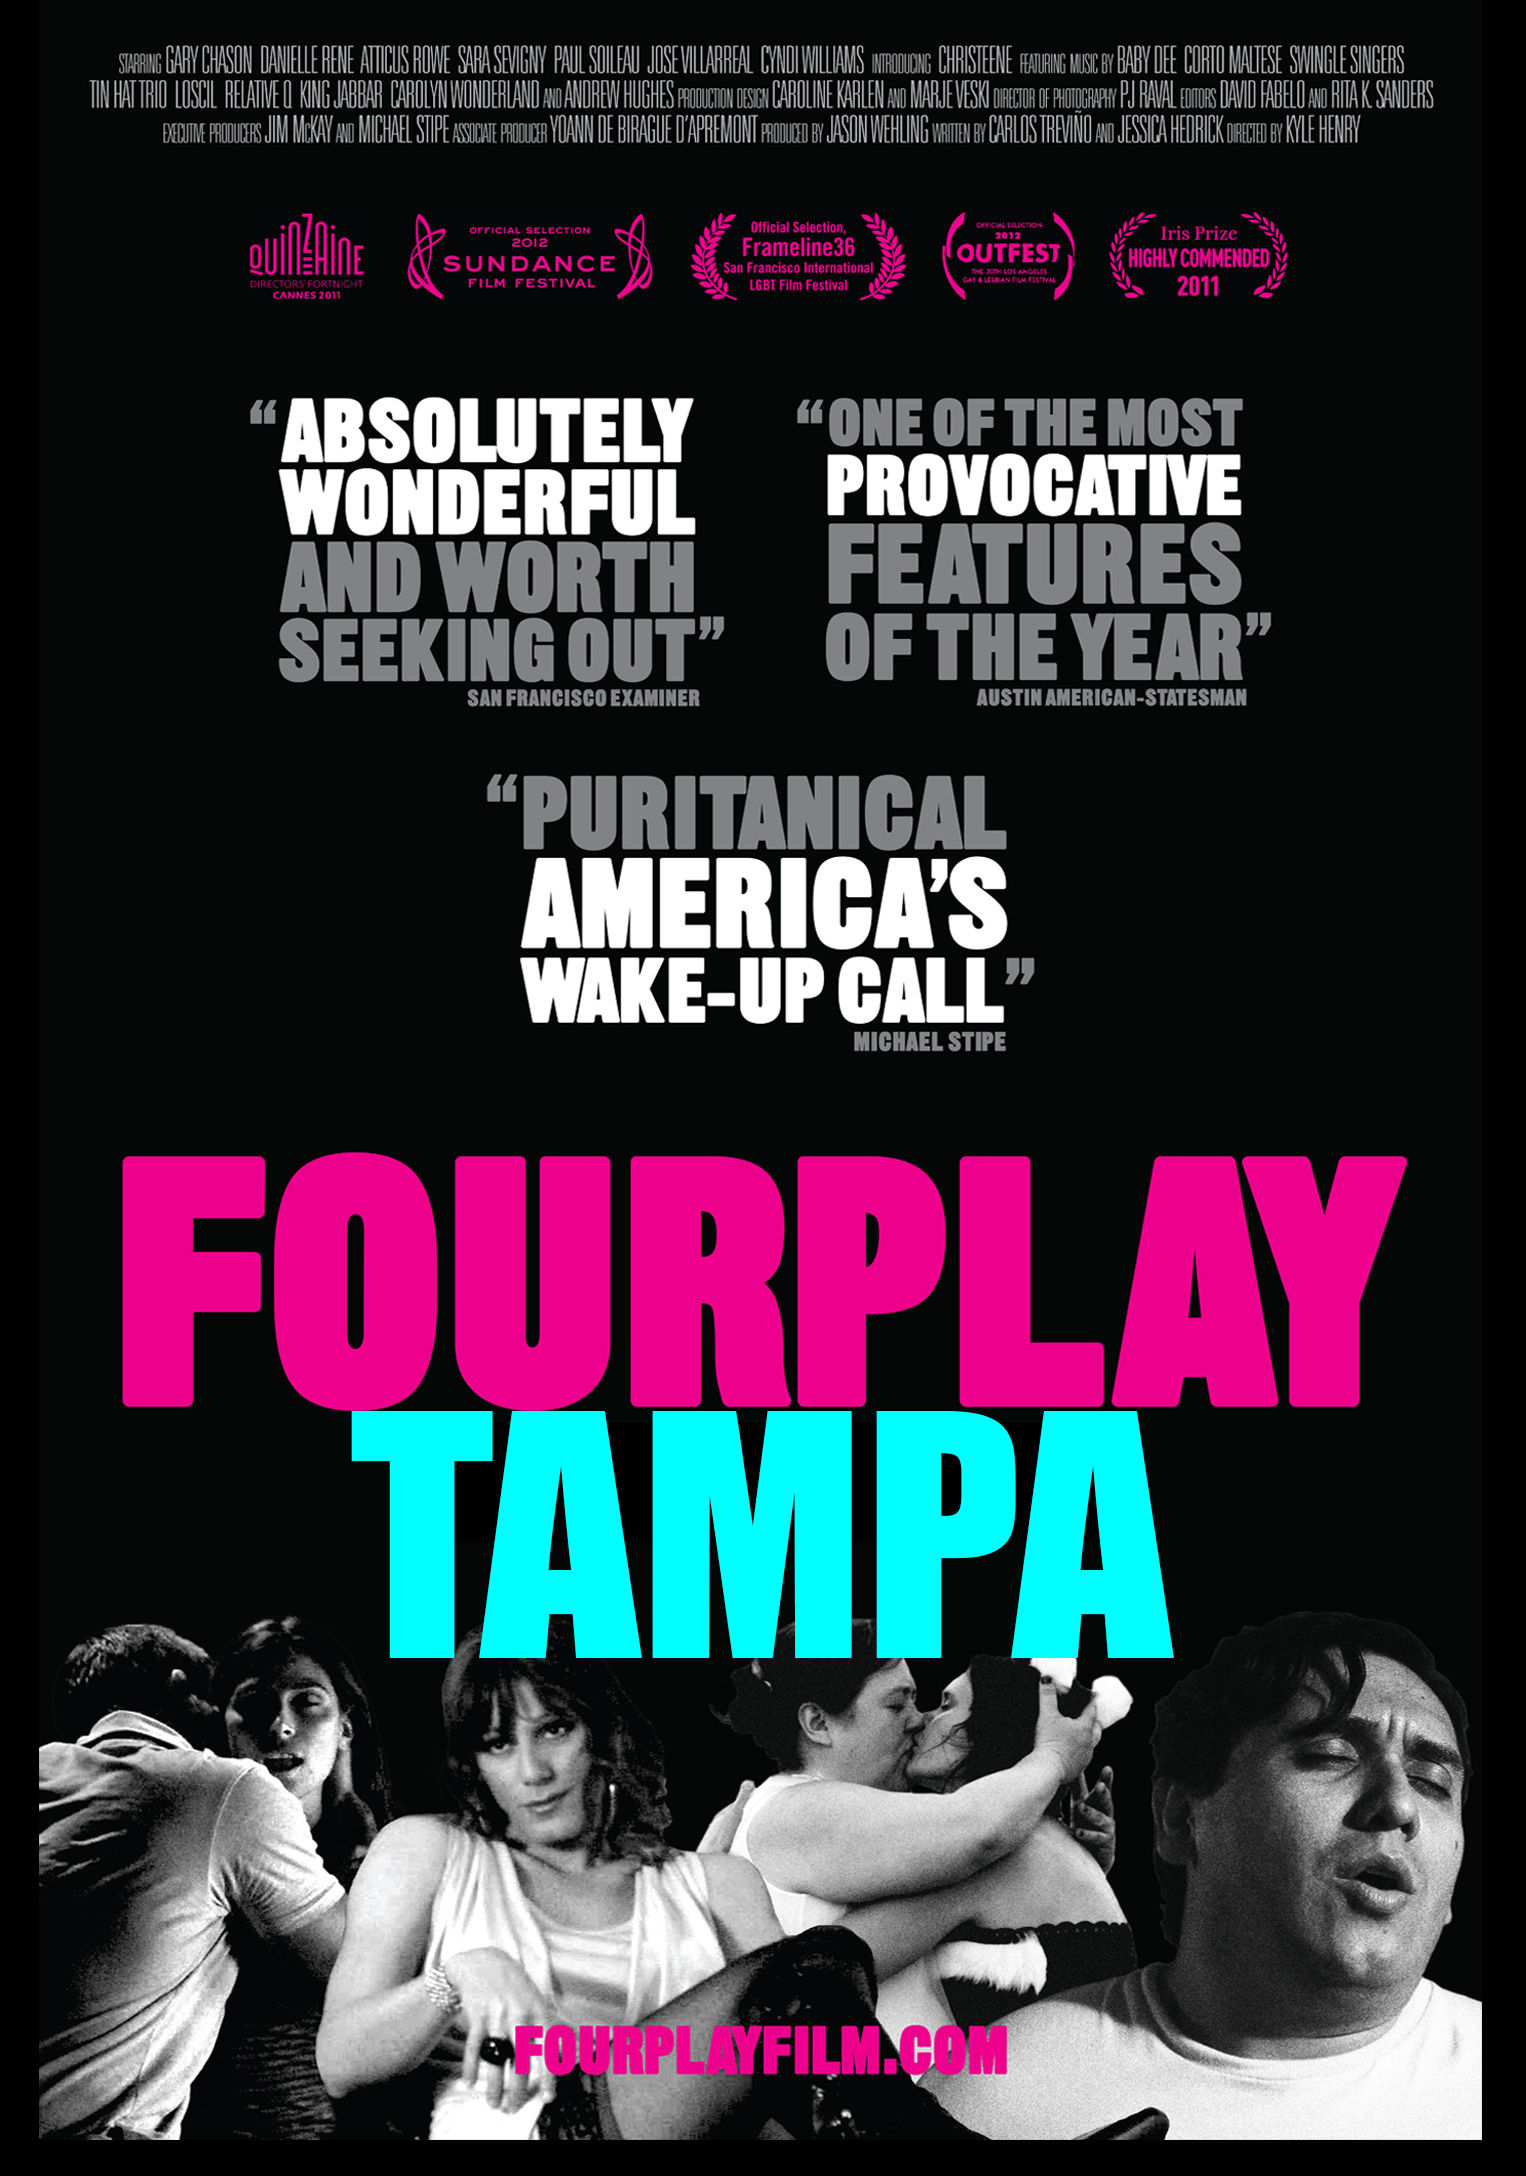 Fourplay Tampa Trailer